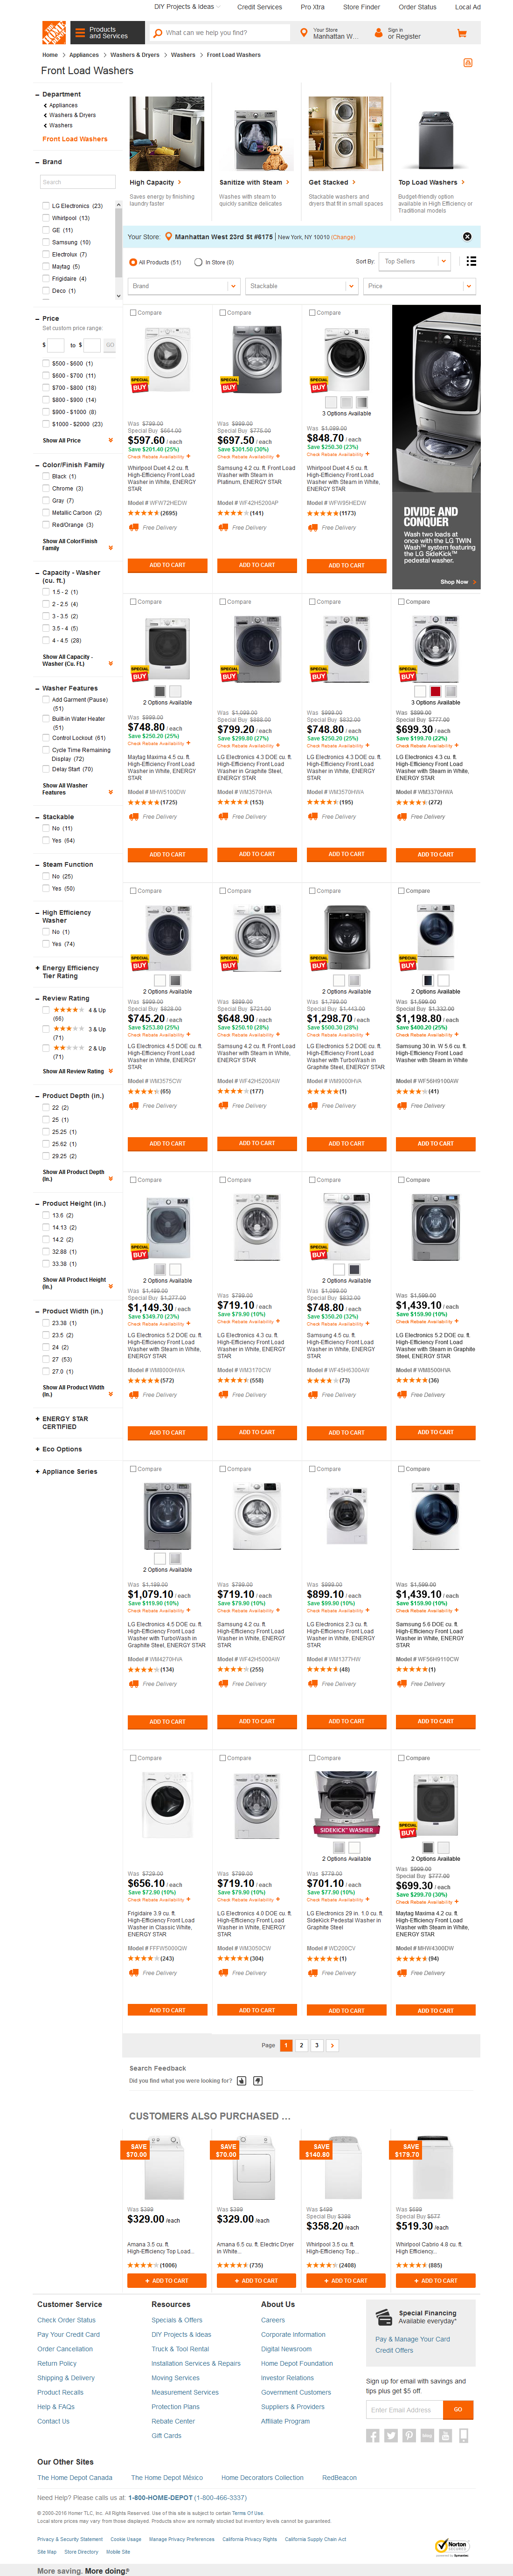 Home Depot s Homepage & Categories Usability Score 1104